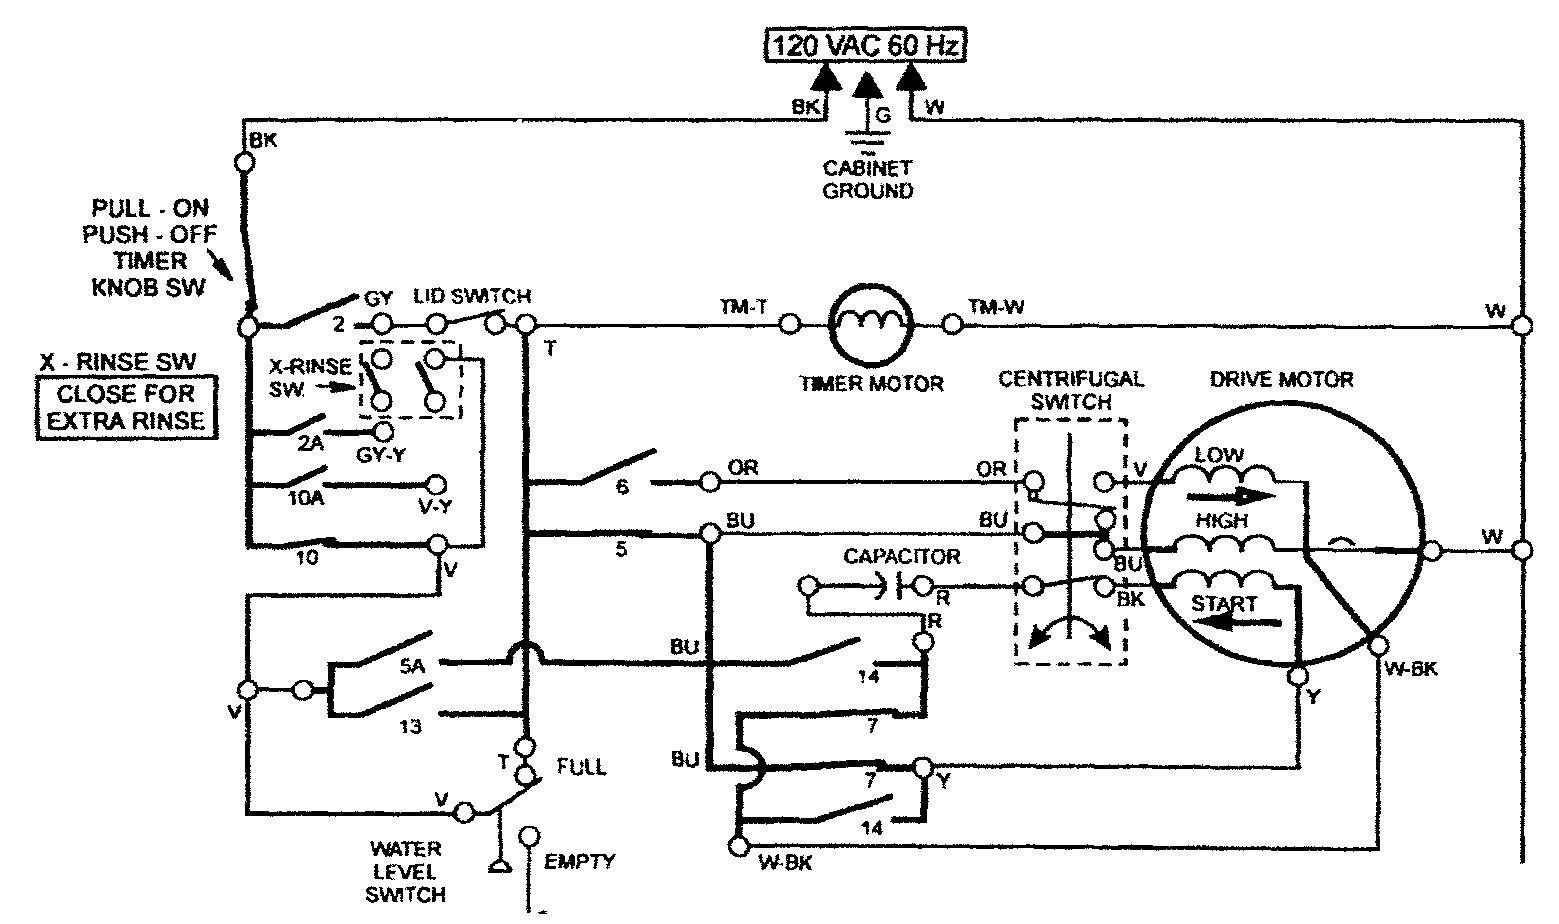 Start Capacitor Schematic